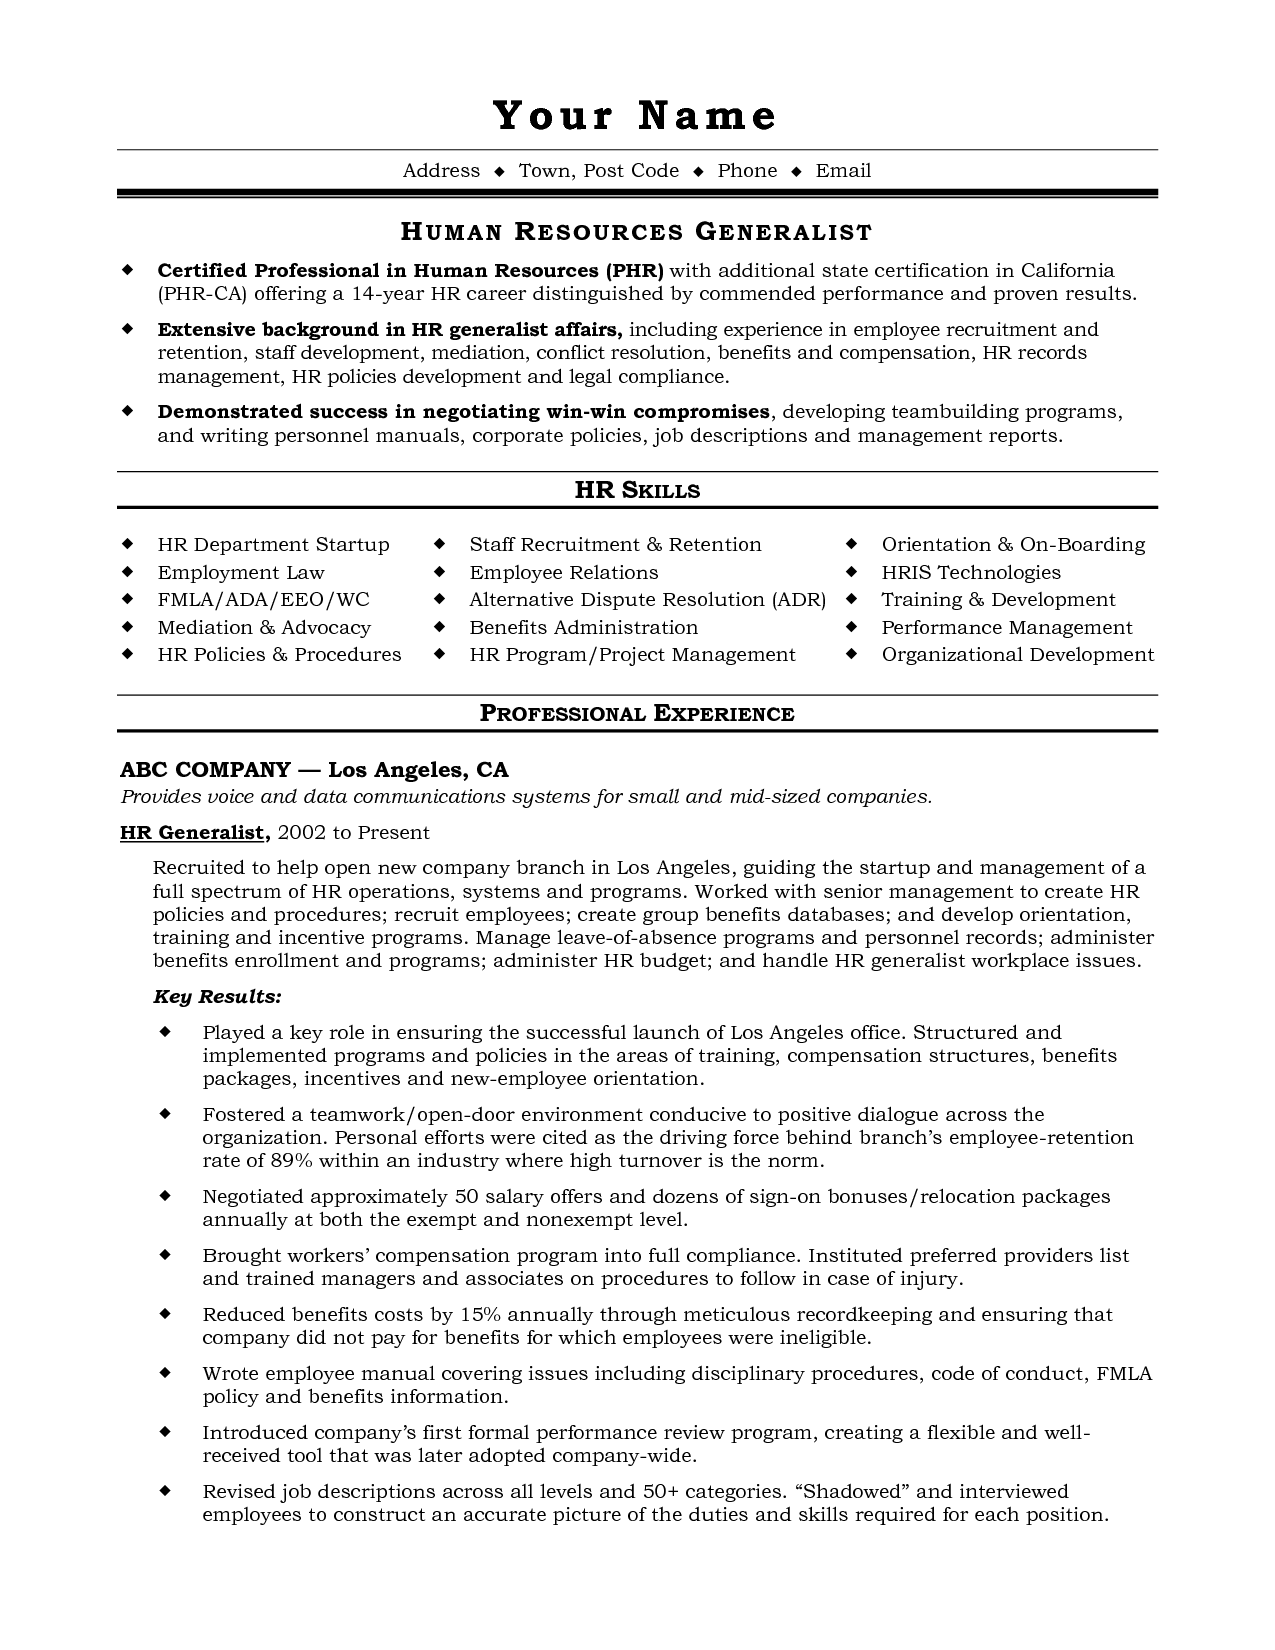 Free Resume Templates Human Resources Free Cv Template Word Resume Template Examples Business Resume Template